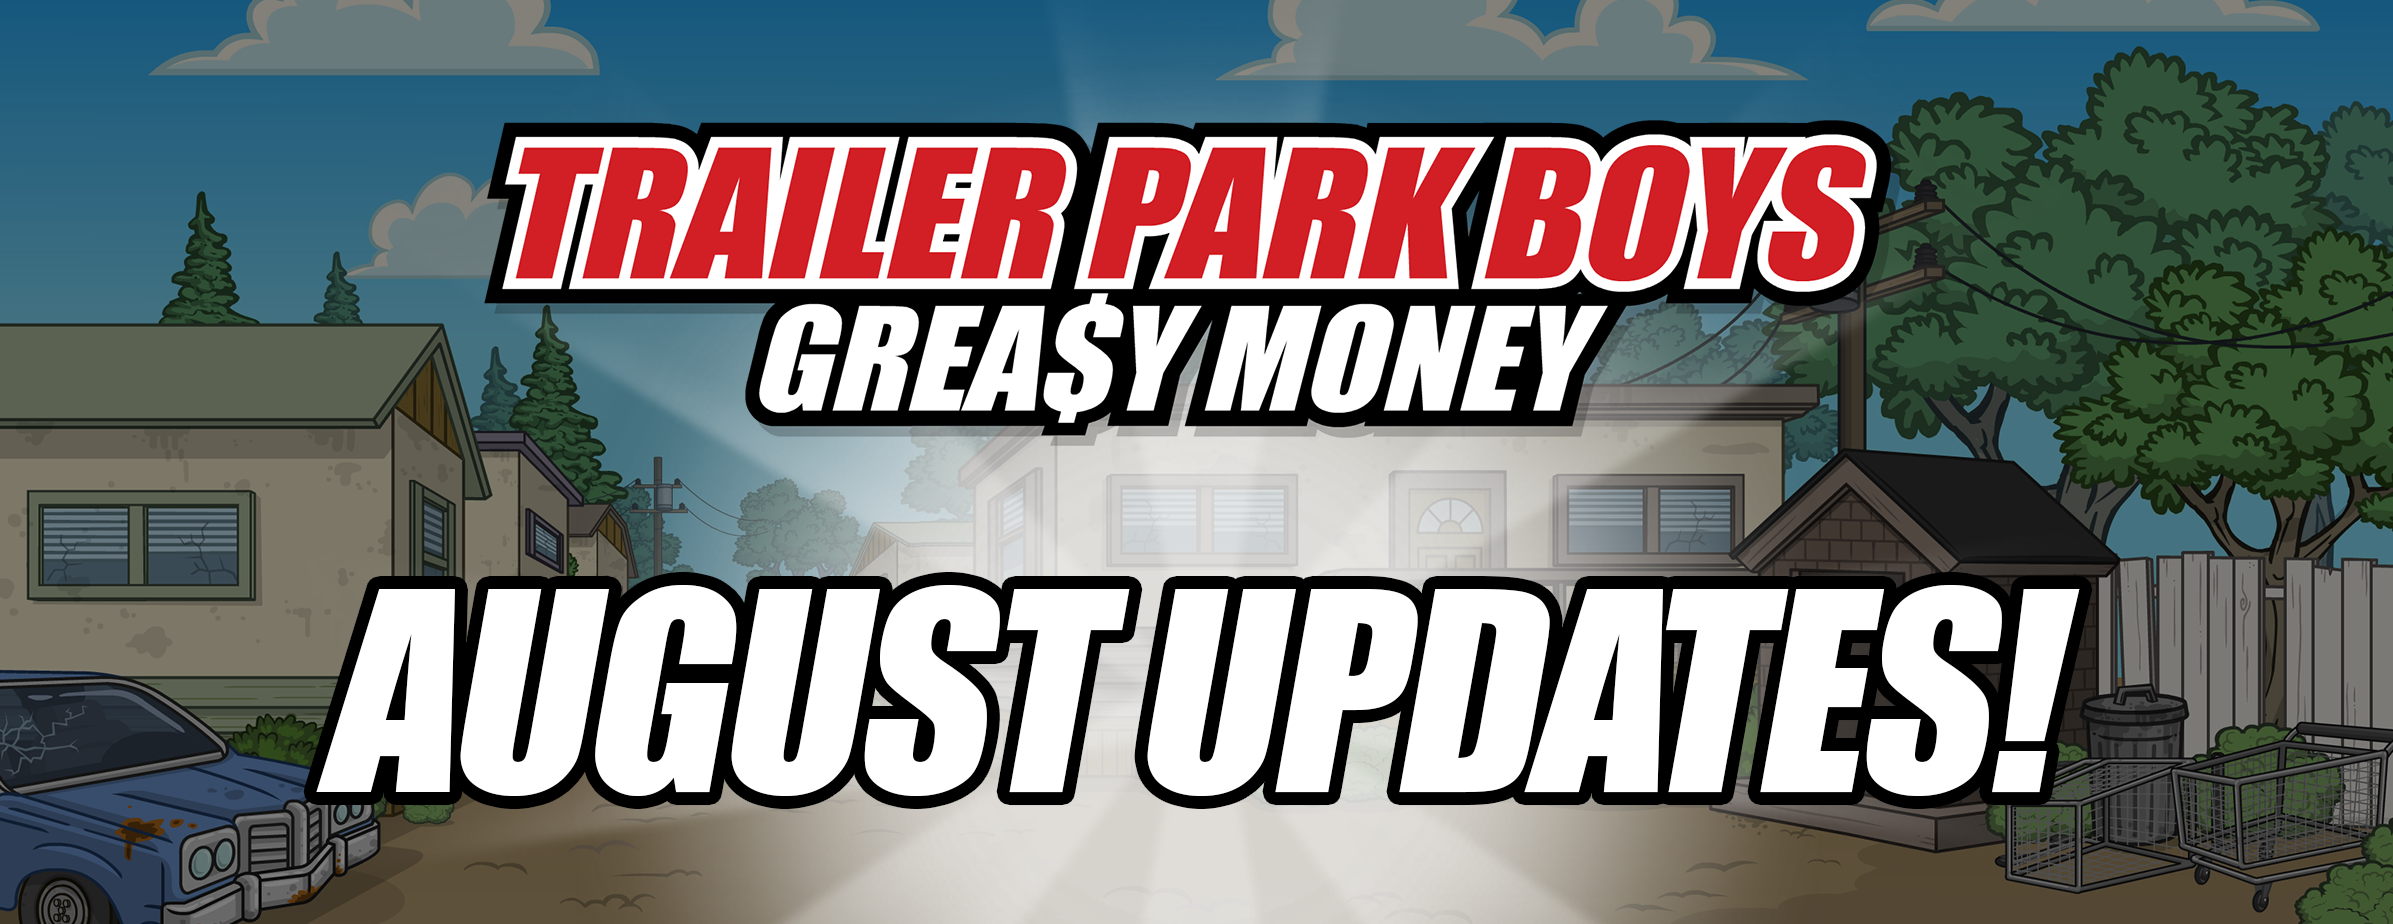 Trailer Park Boys: Greasy August Events!